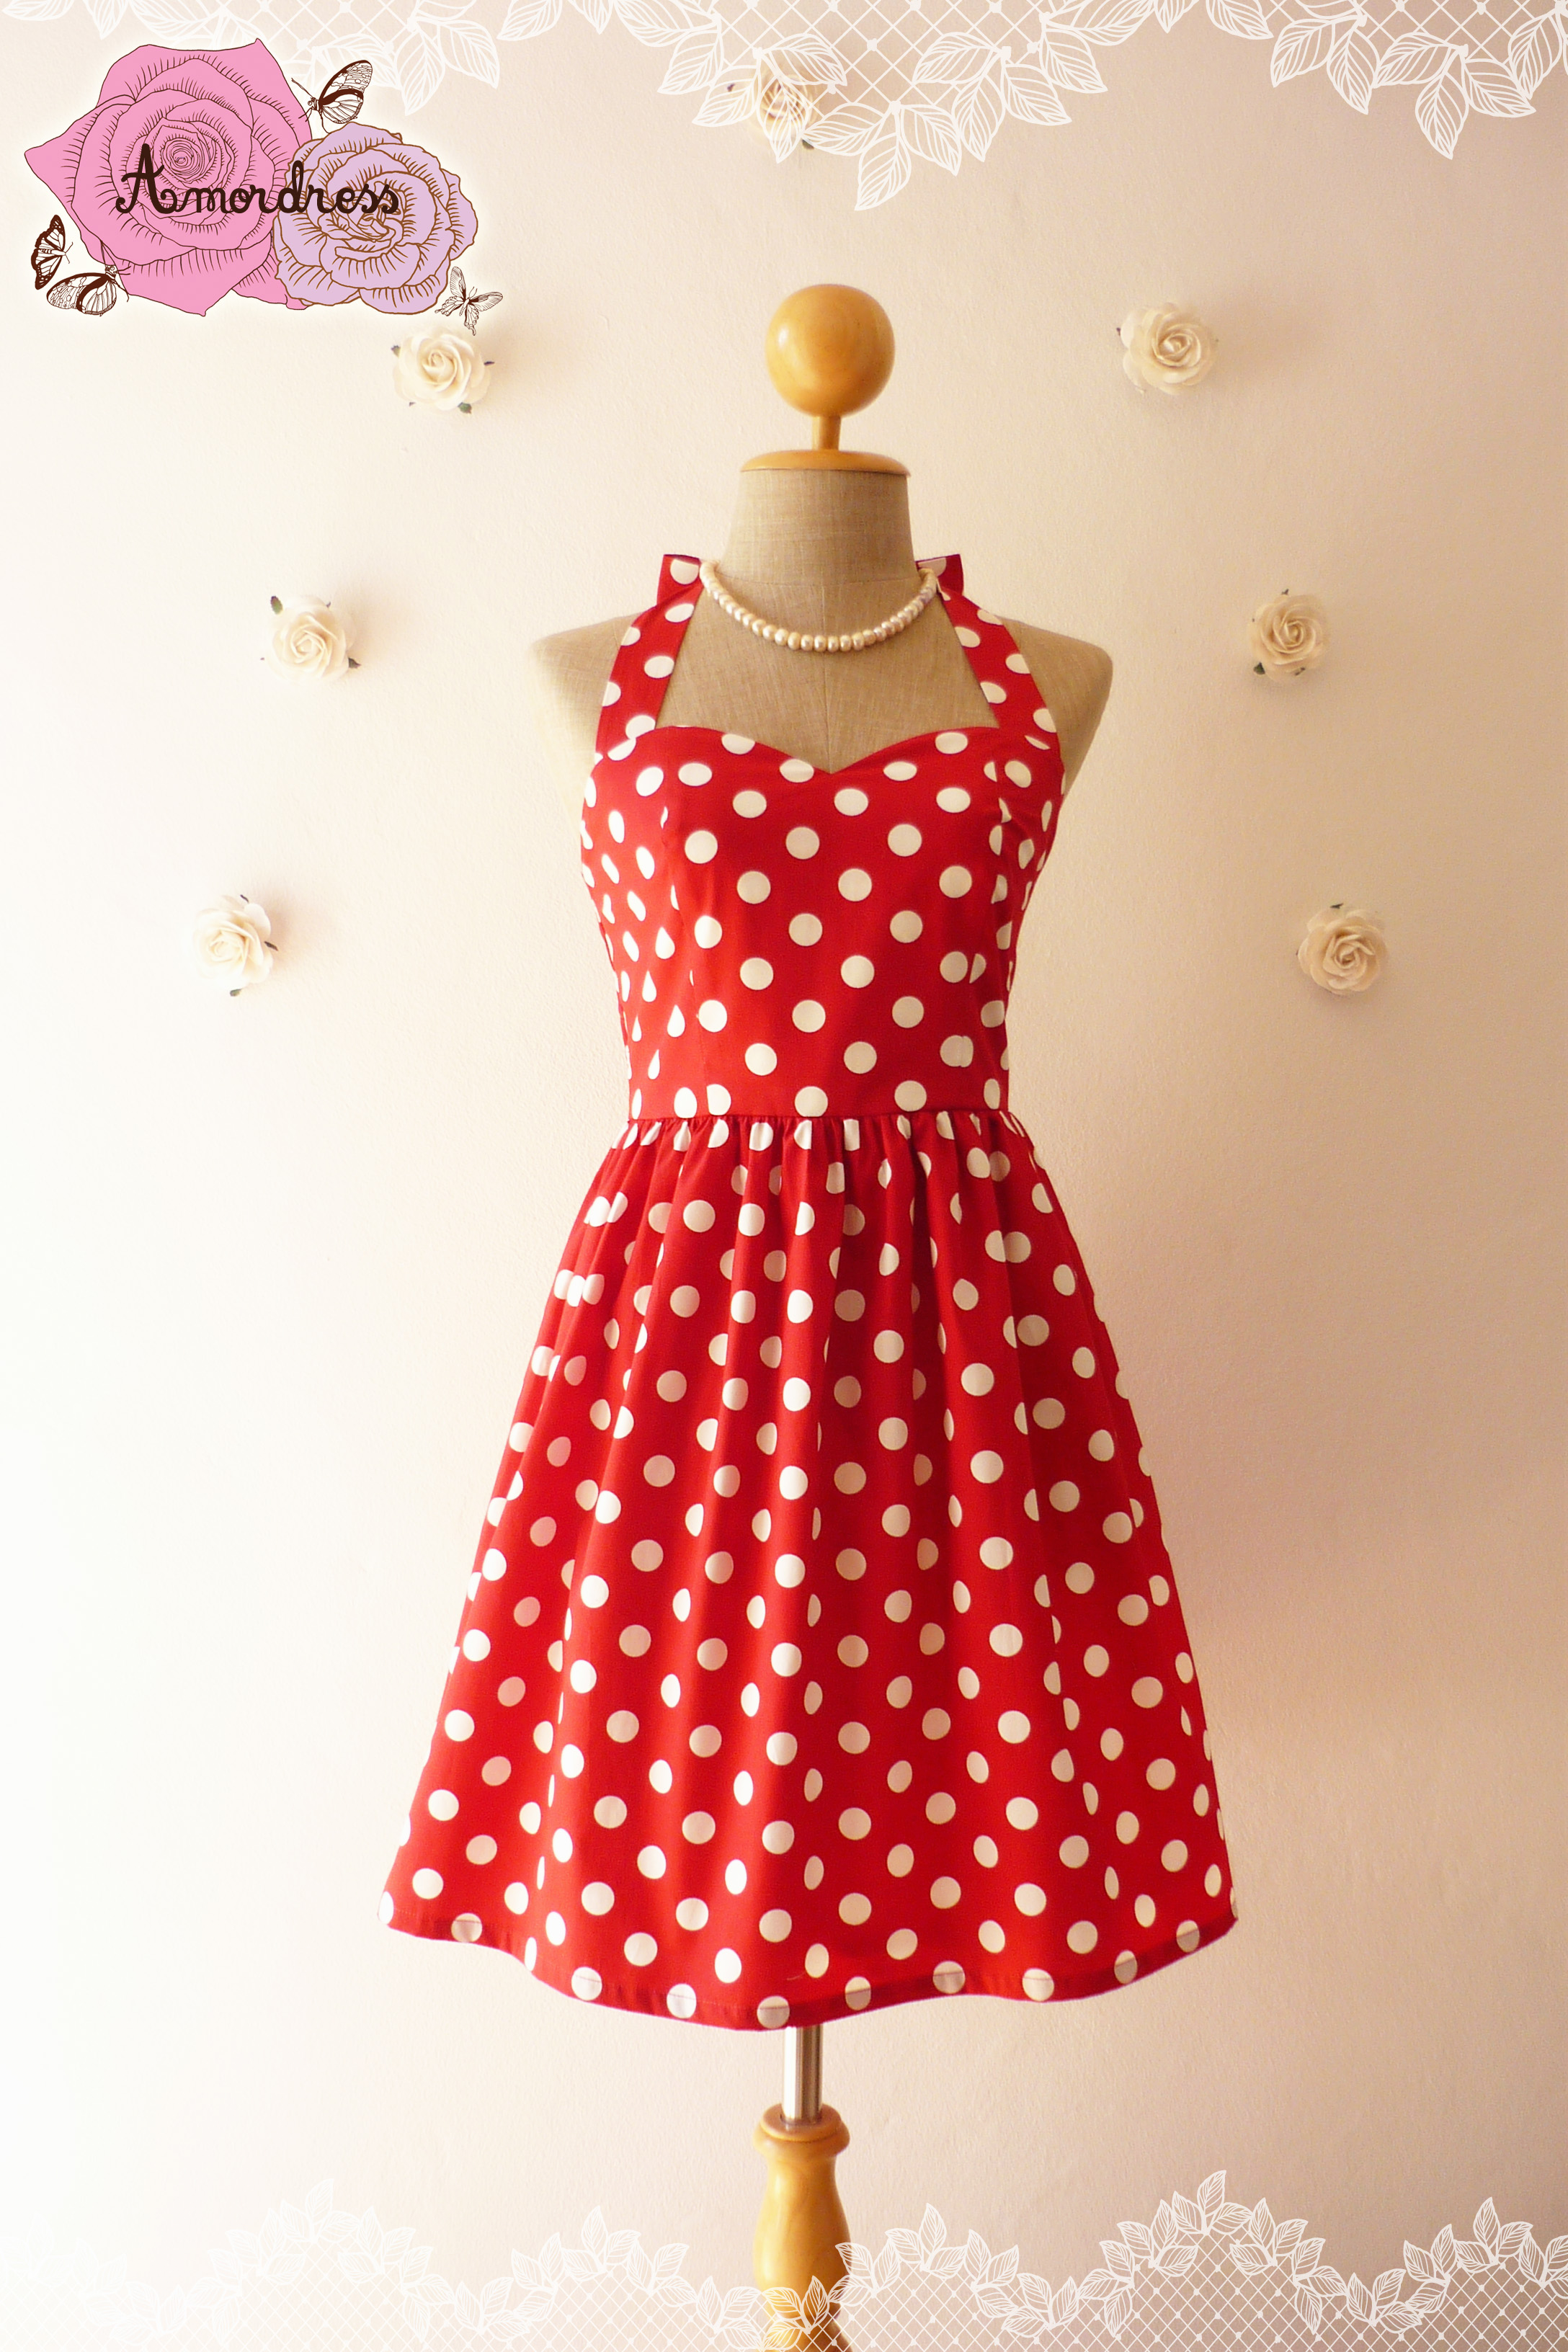 2b0e7dac3dc4 Red Summer Dress Red Party Dress Polka Dot Dress Vintage Inspired ...